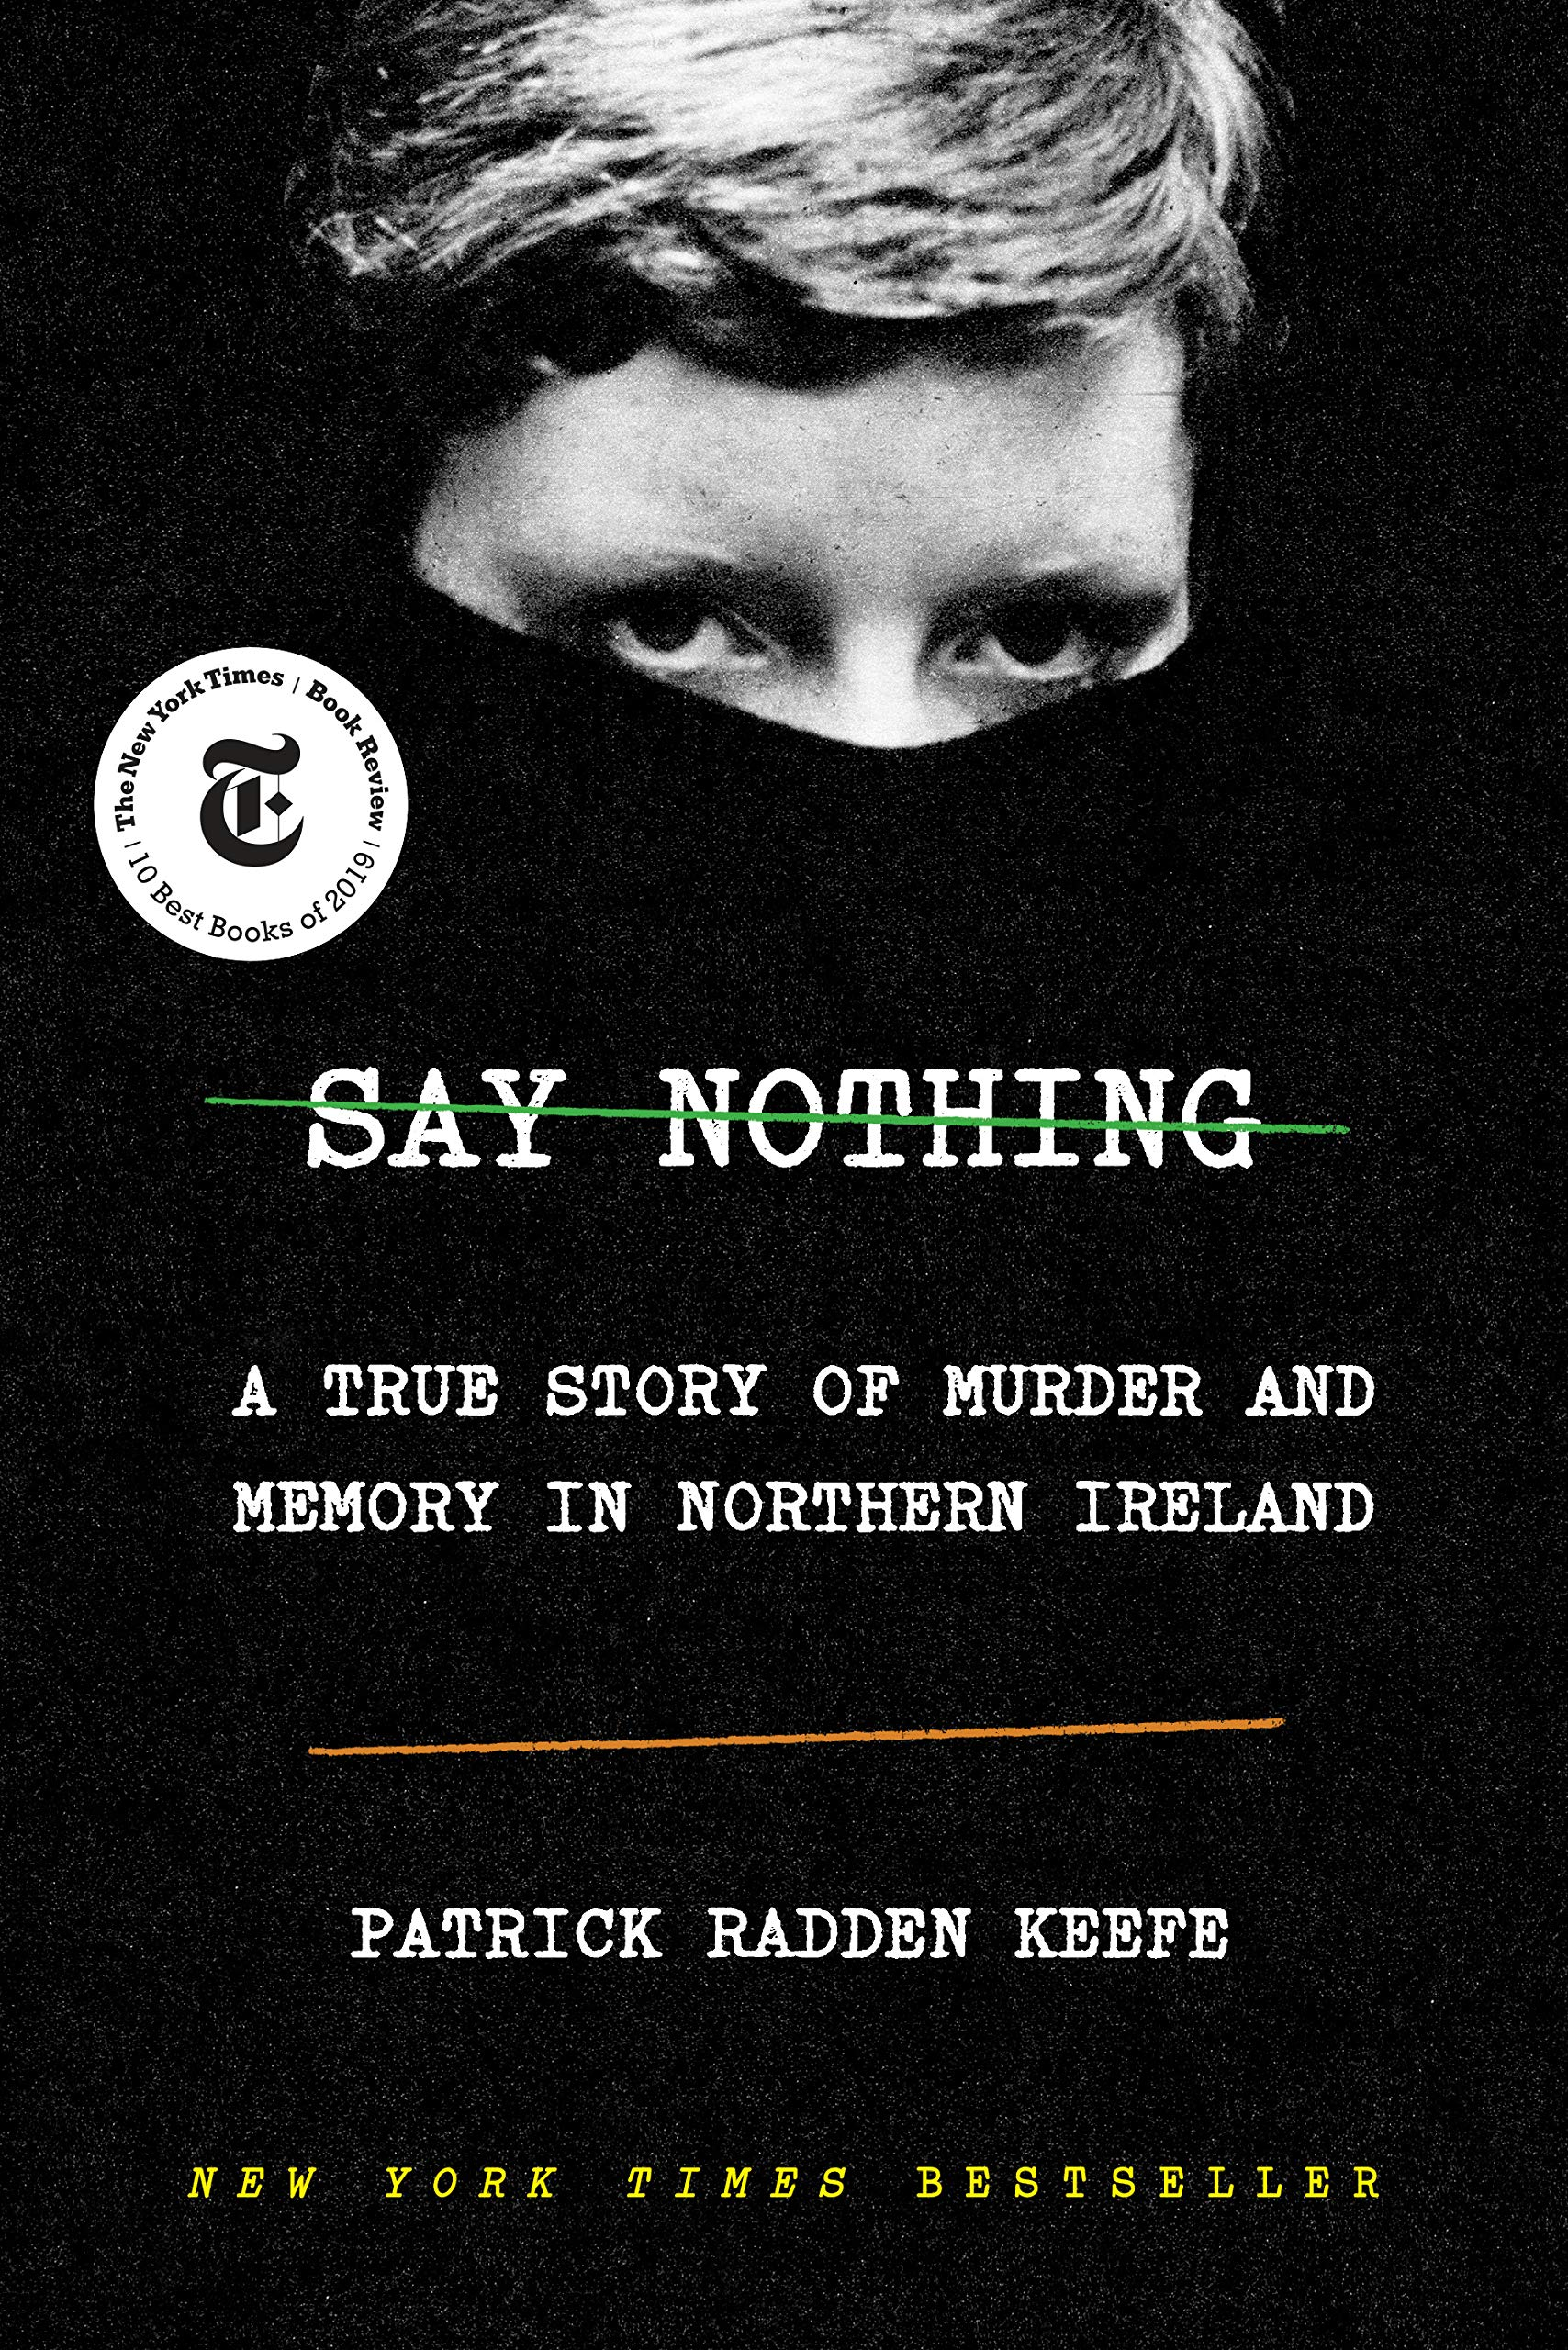 Say Nothing: A True Story of Murder and Memory in Northern Ireland by Patrick Radden Keefe (Doubleday)